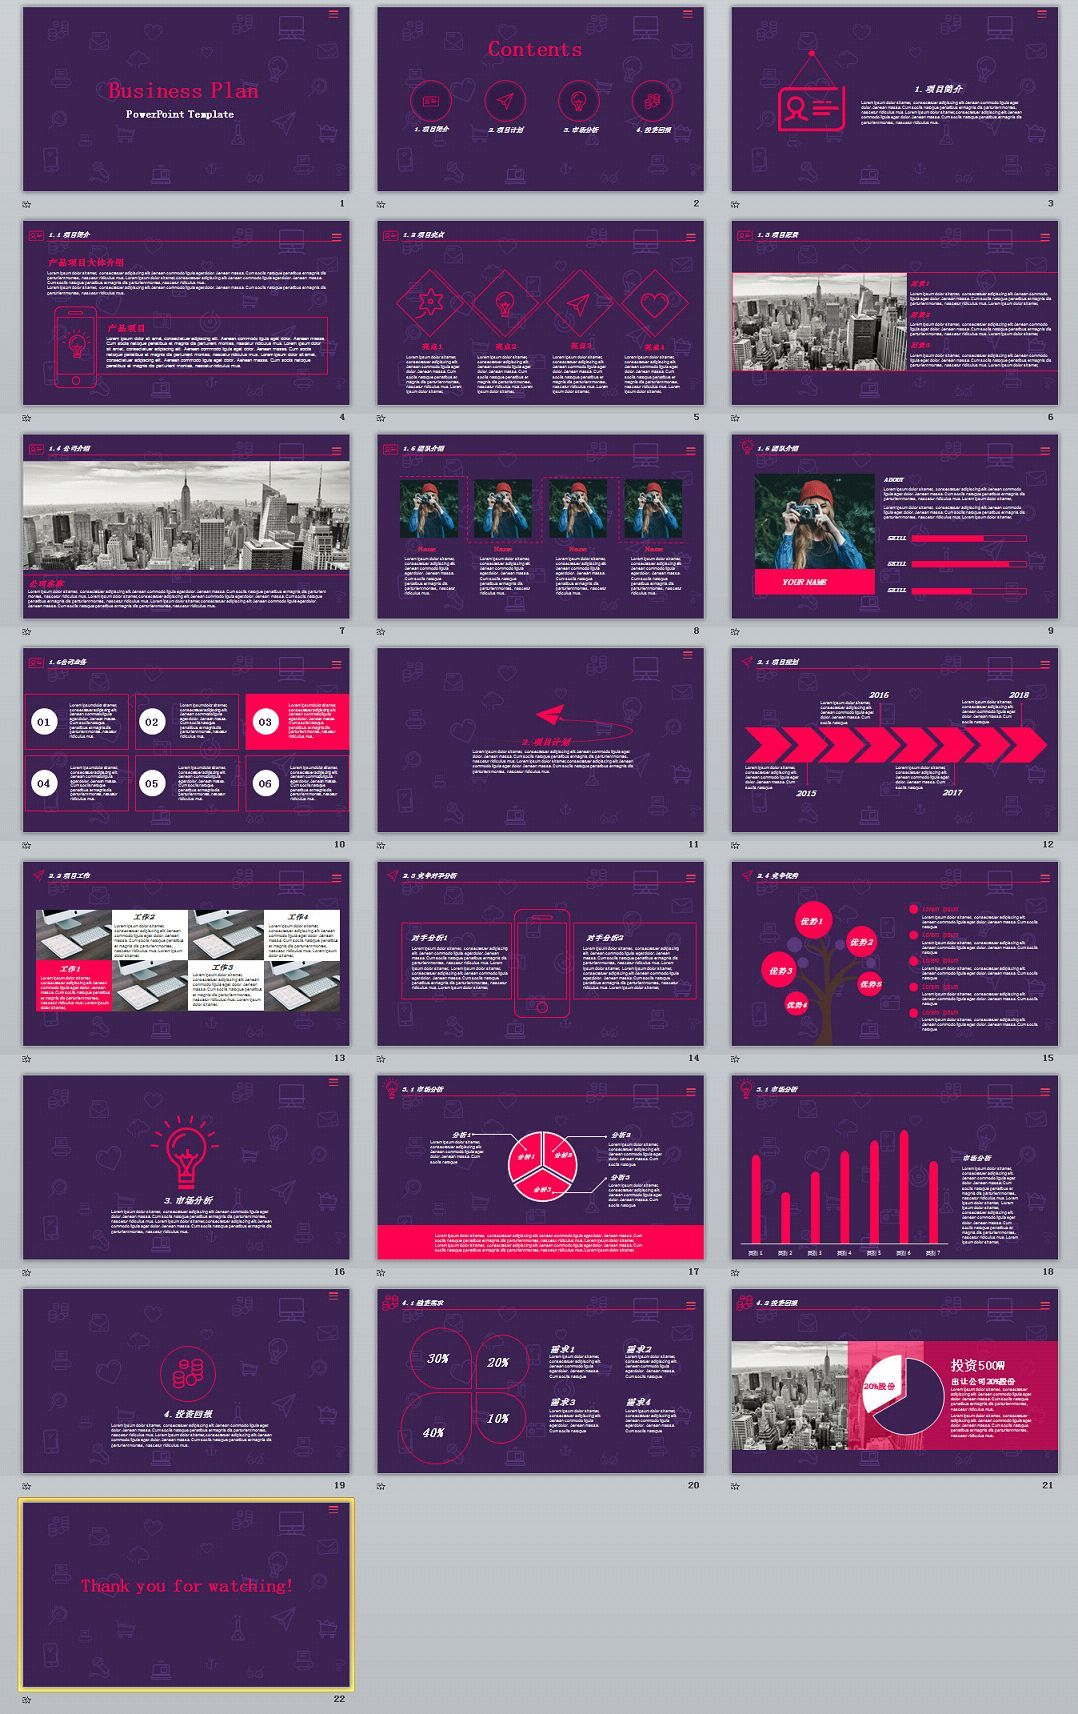 2016 business plan ppt templates new powerpoint templates download